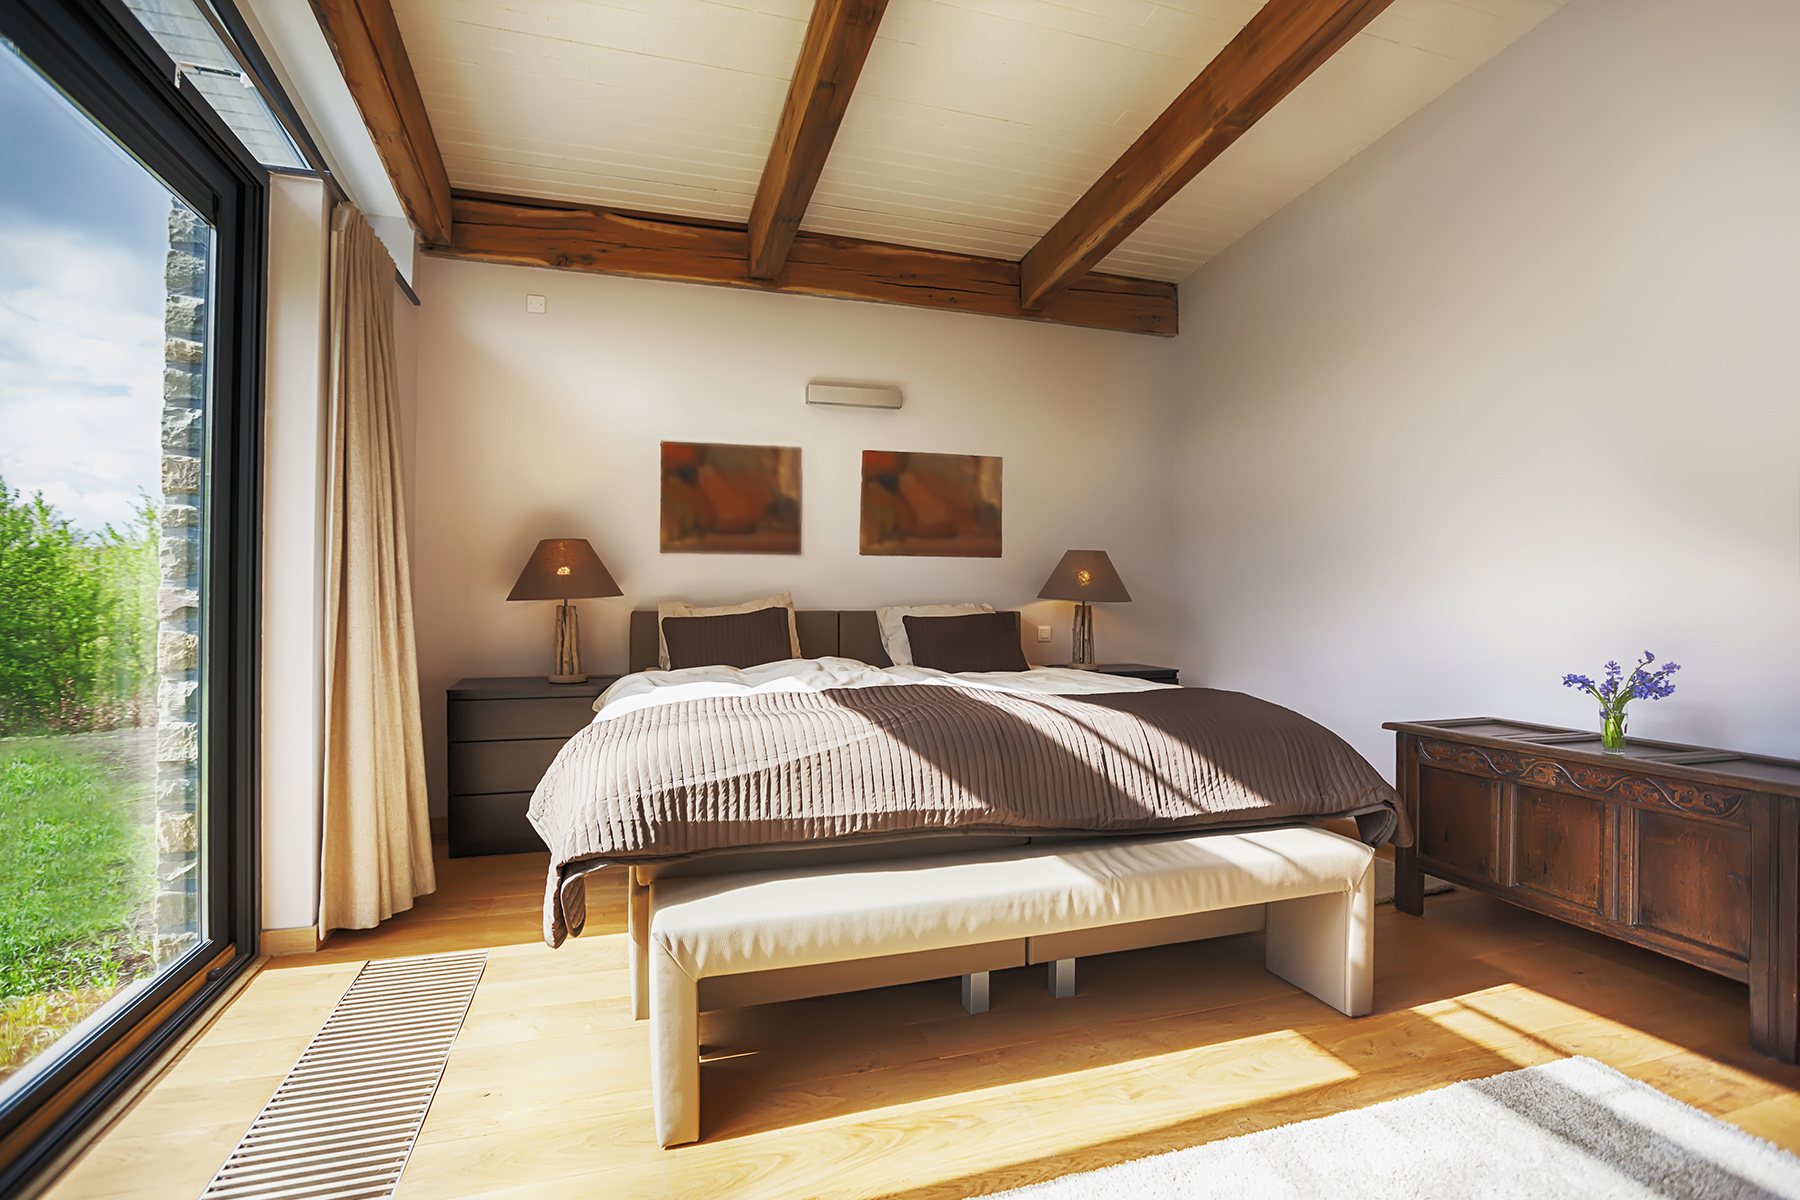 A bedroom in a villa in the Belgian Ardennes